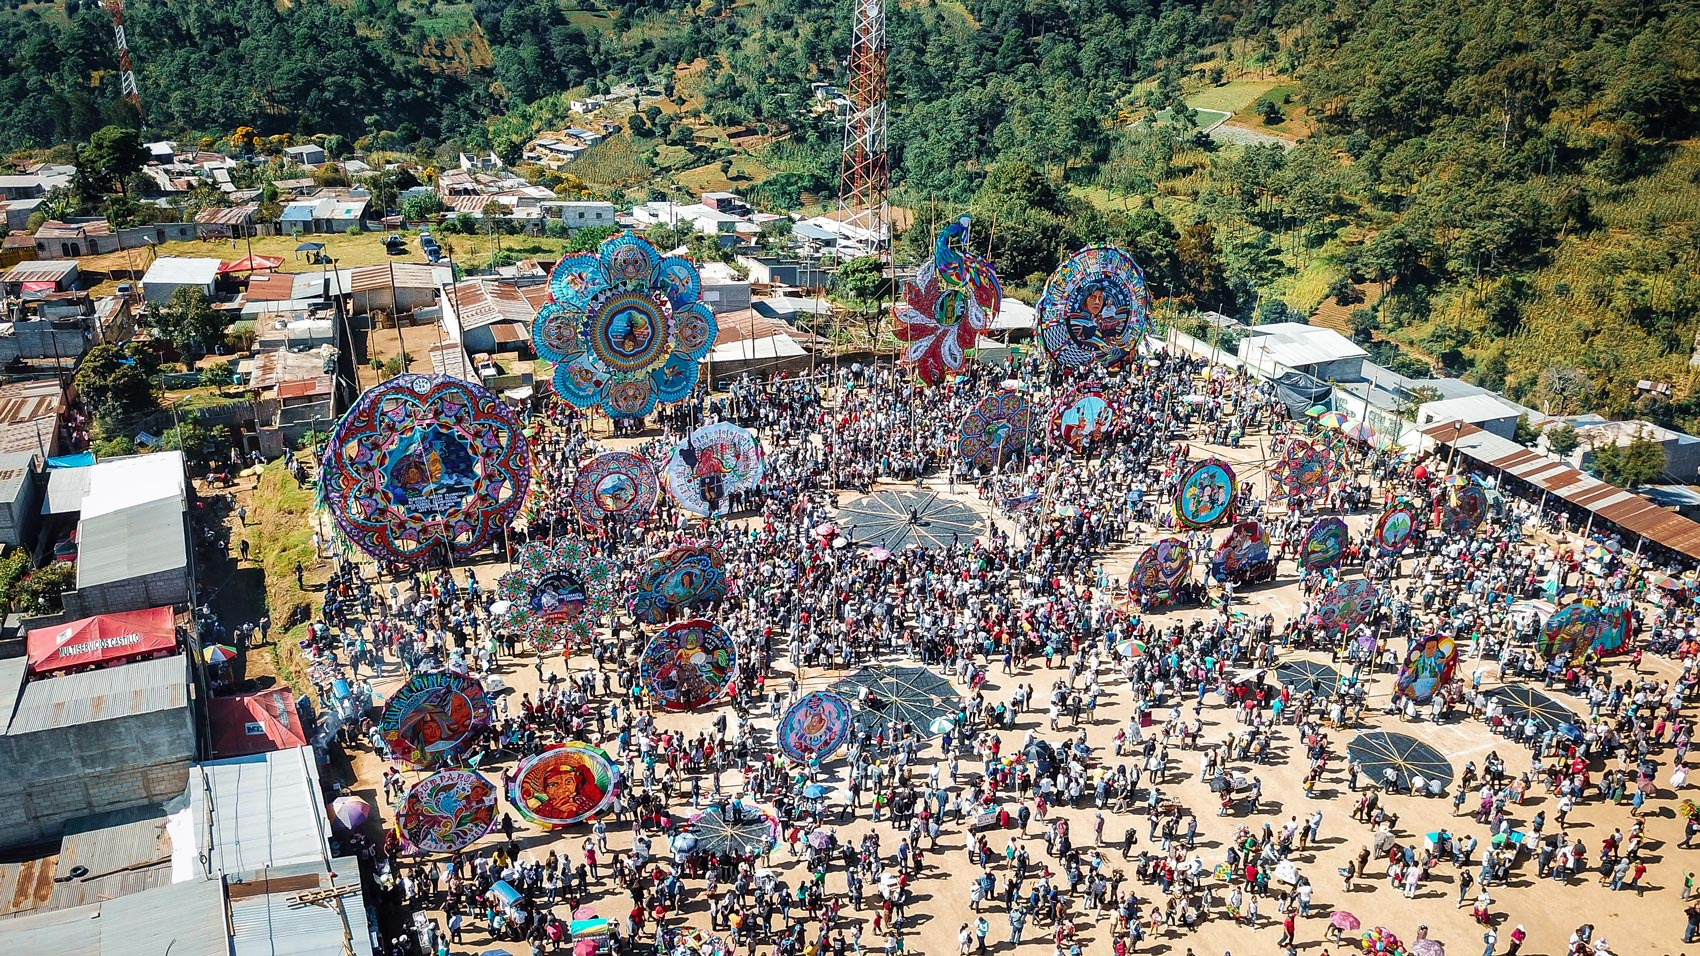 Sumpango Giant Kite Festival: How To Spend An Unconventional Day Of The Death - Slowly Anywhere